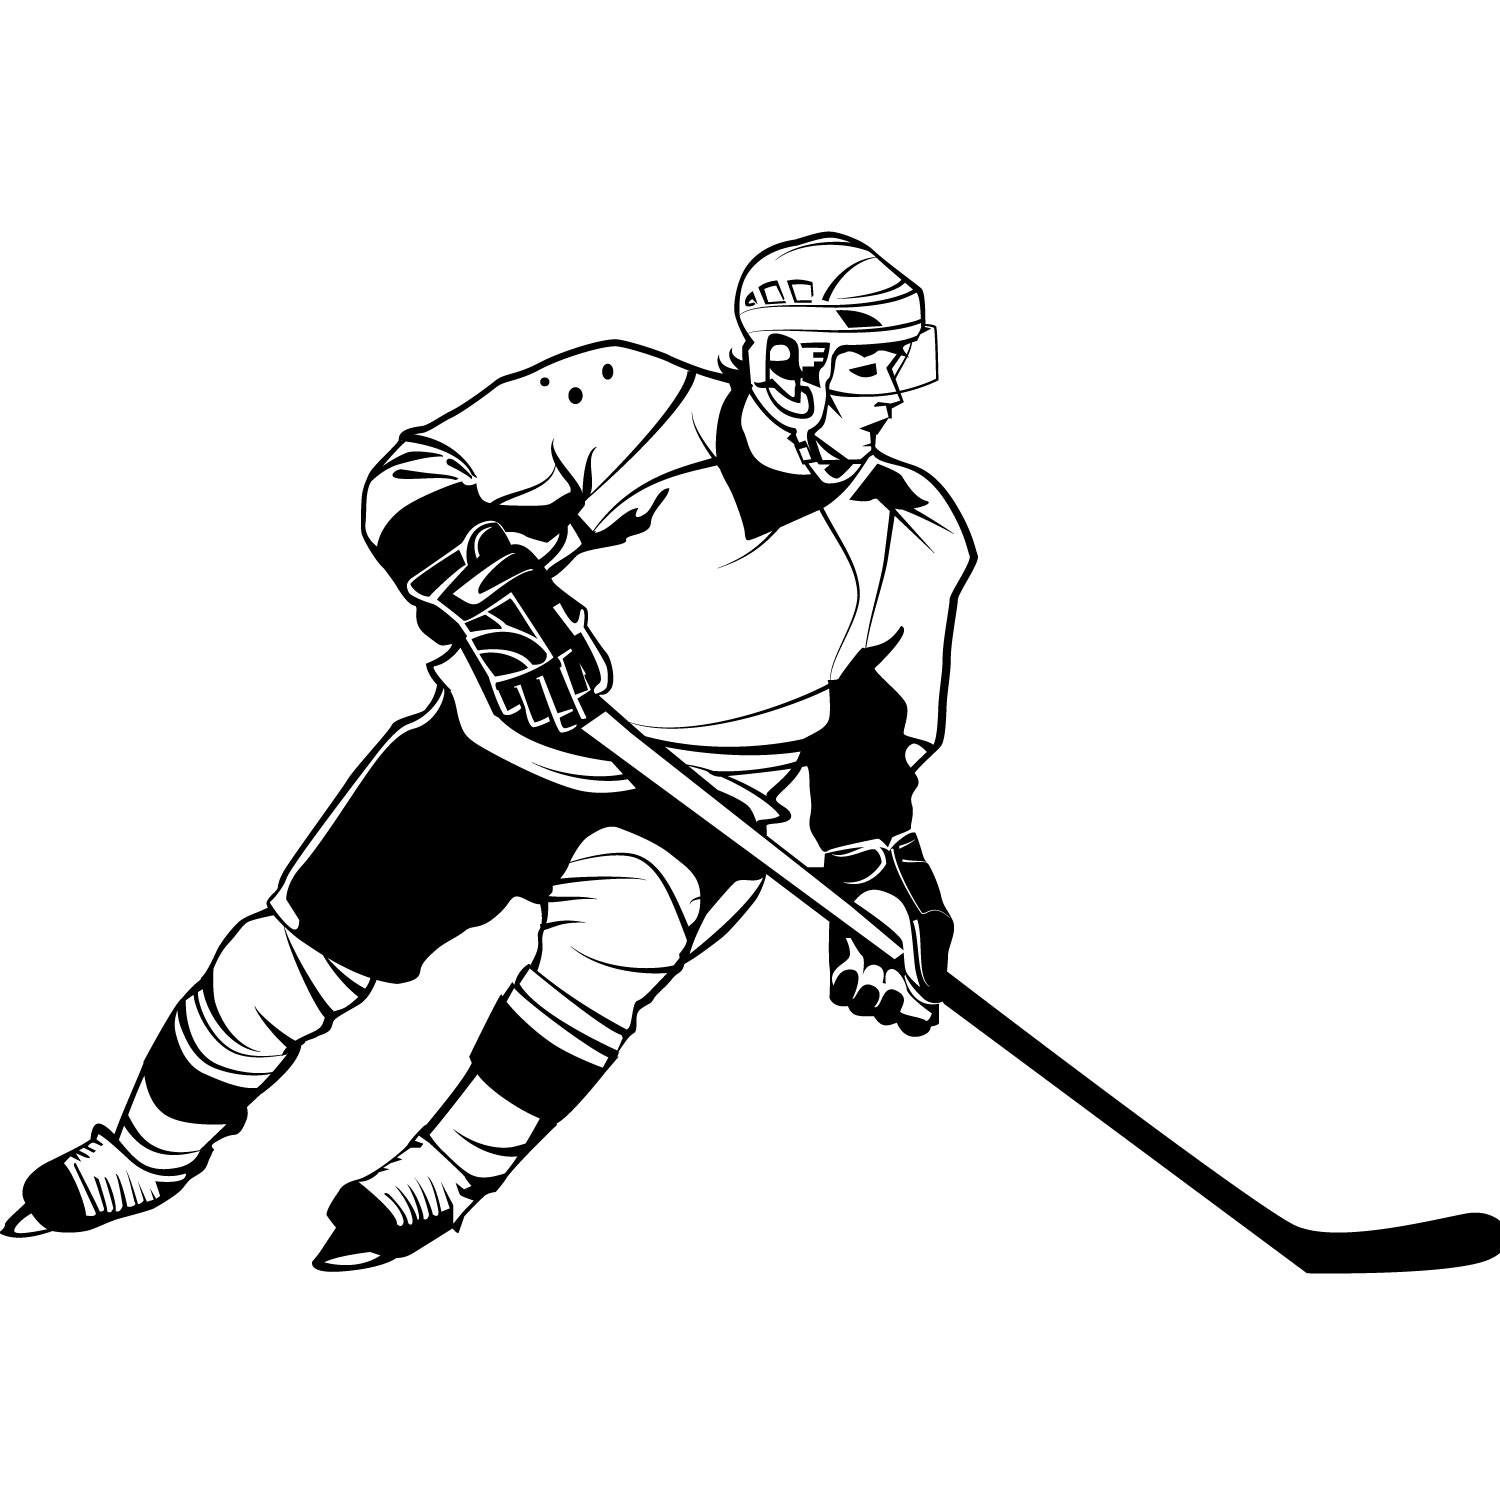 Hockey player clipart black and white